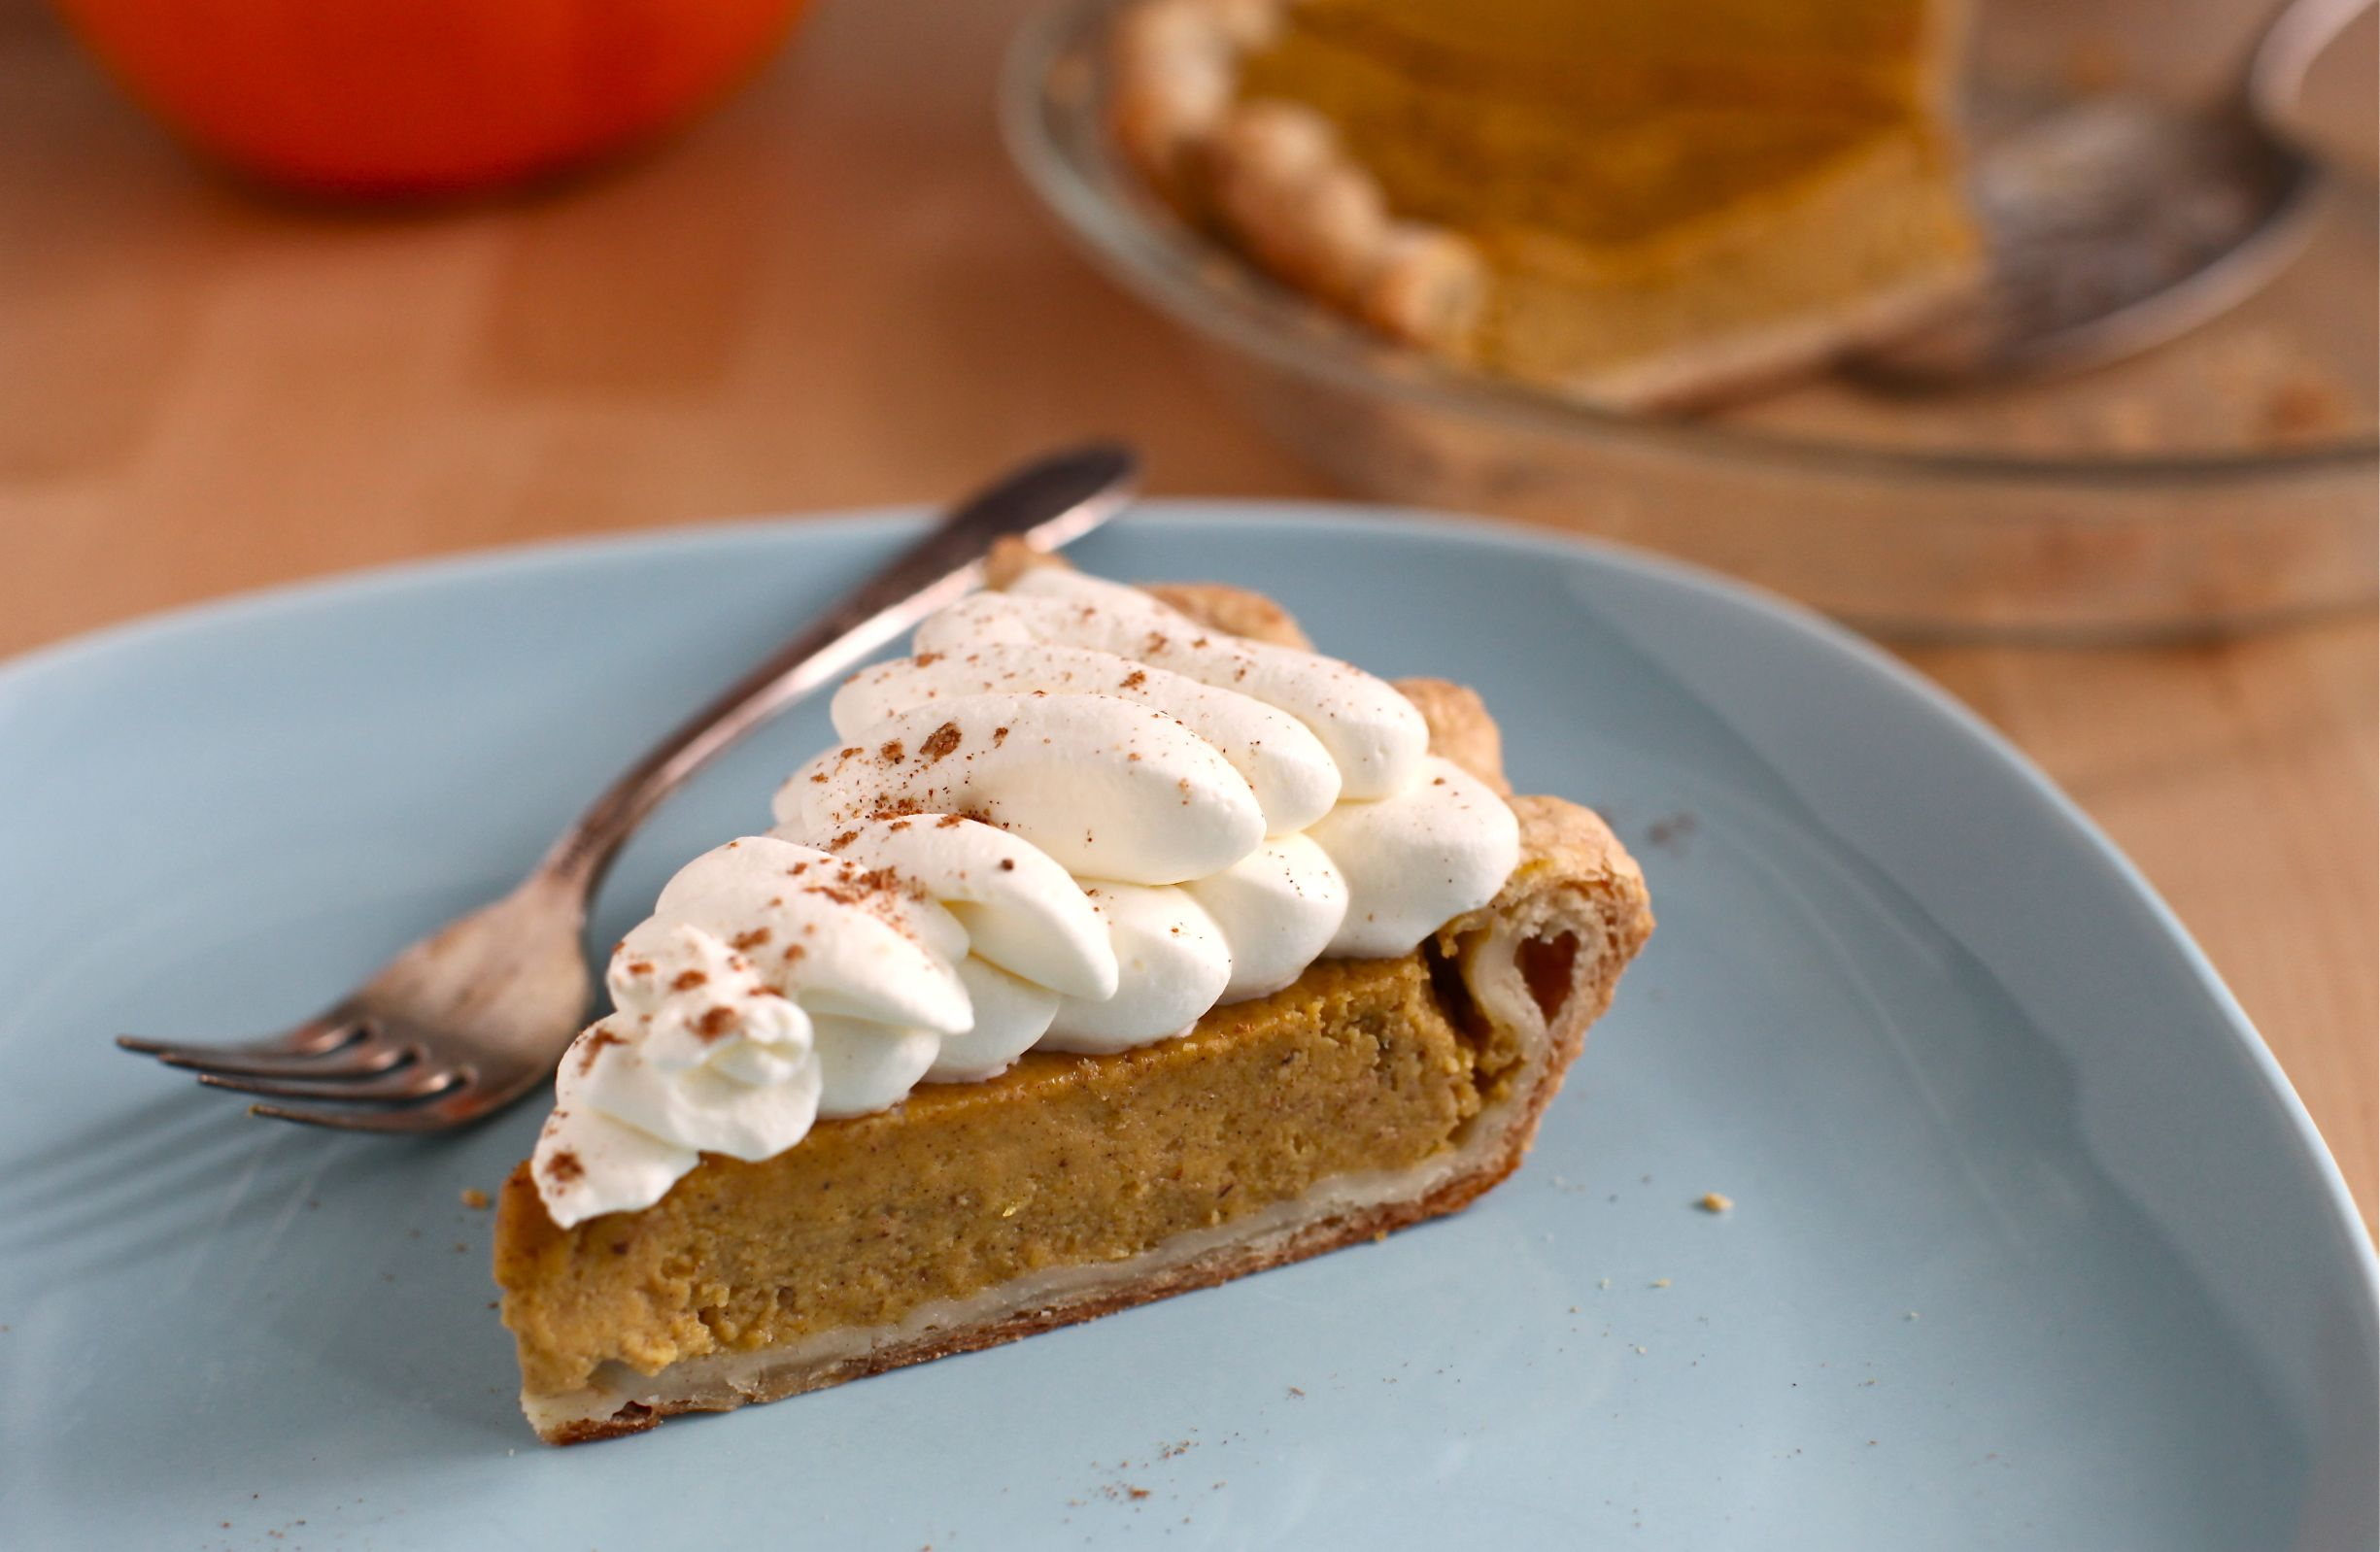 Forget the sugar and canned milk this decadent pie brings together maple syrup warm roasted pumpkin thick cream and fresh spices for a fall dessert that